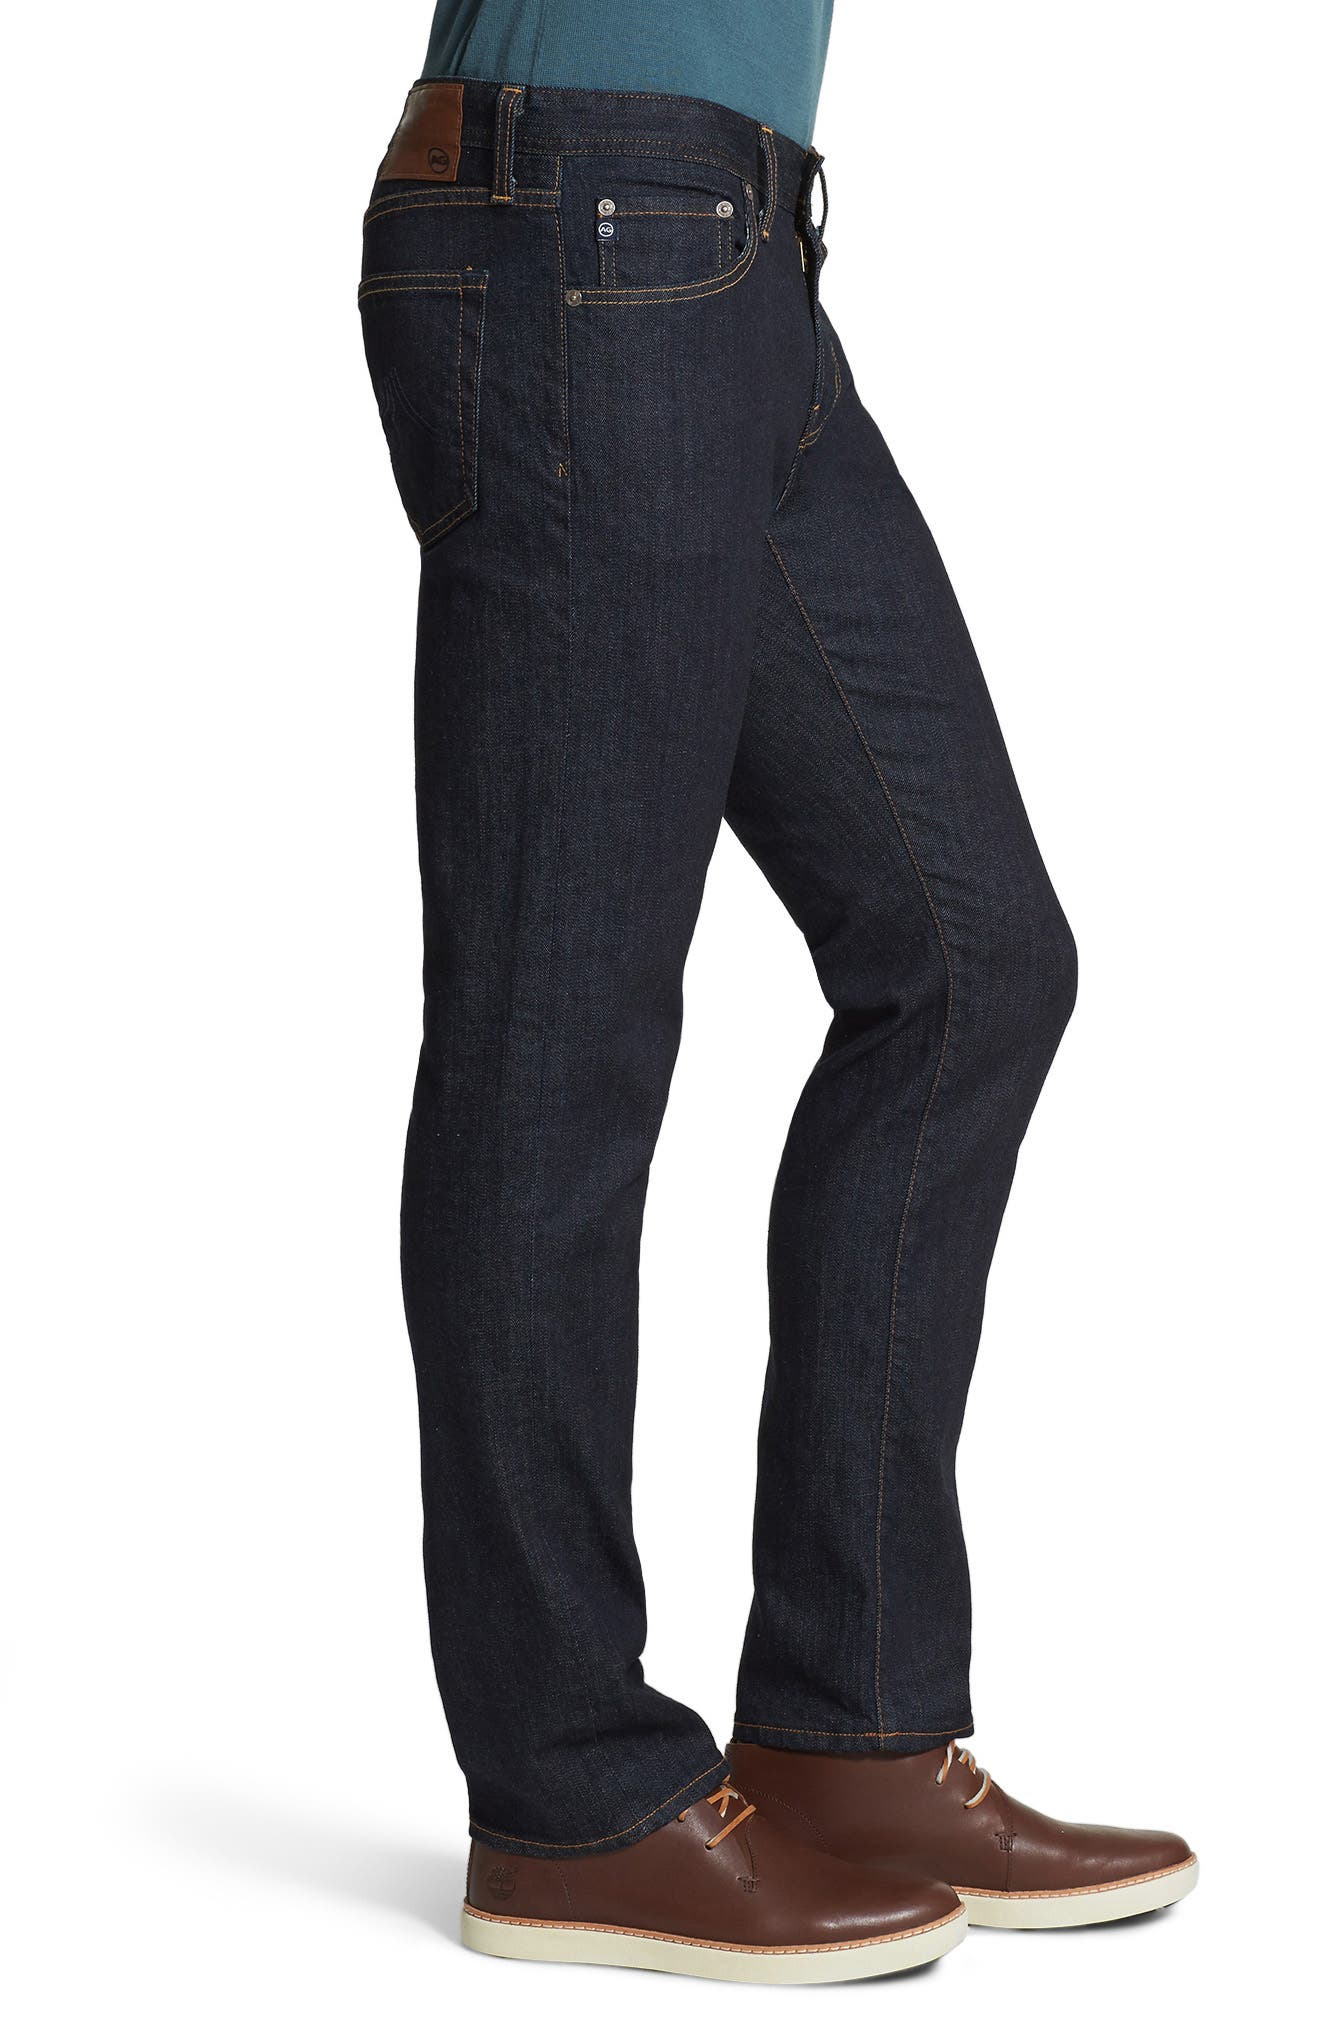 'Graduate' Slim Straight Leg Jeans,                             Alternate thumbnail 7, color,                             JACK